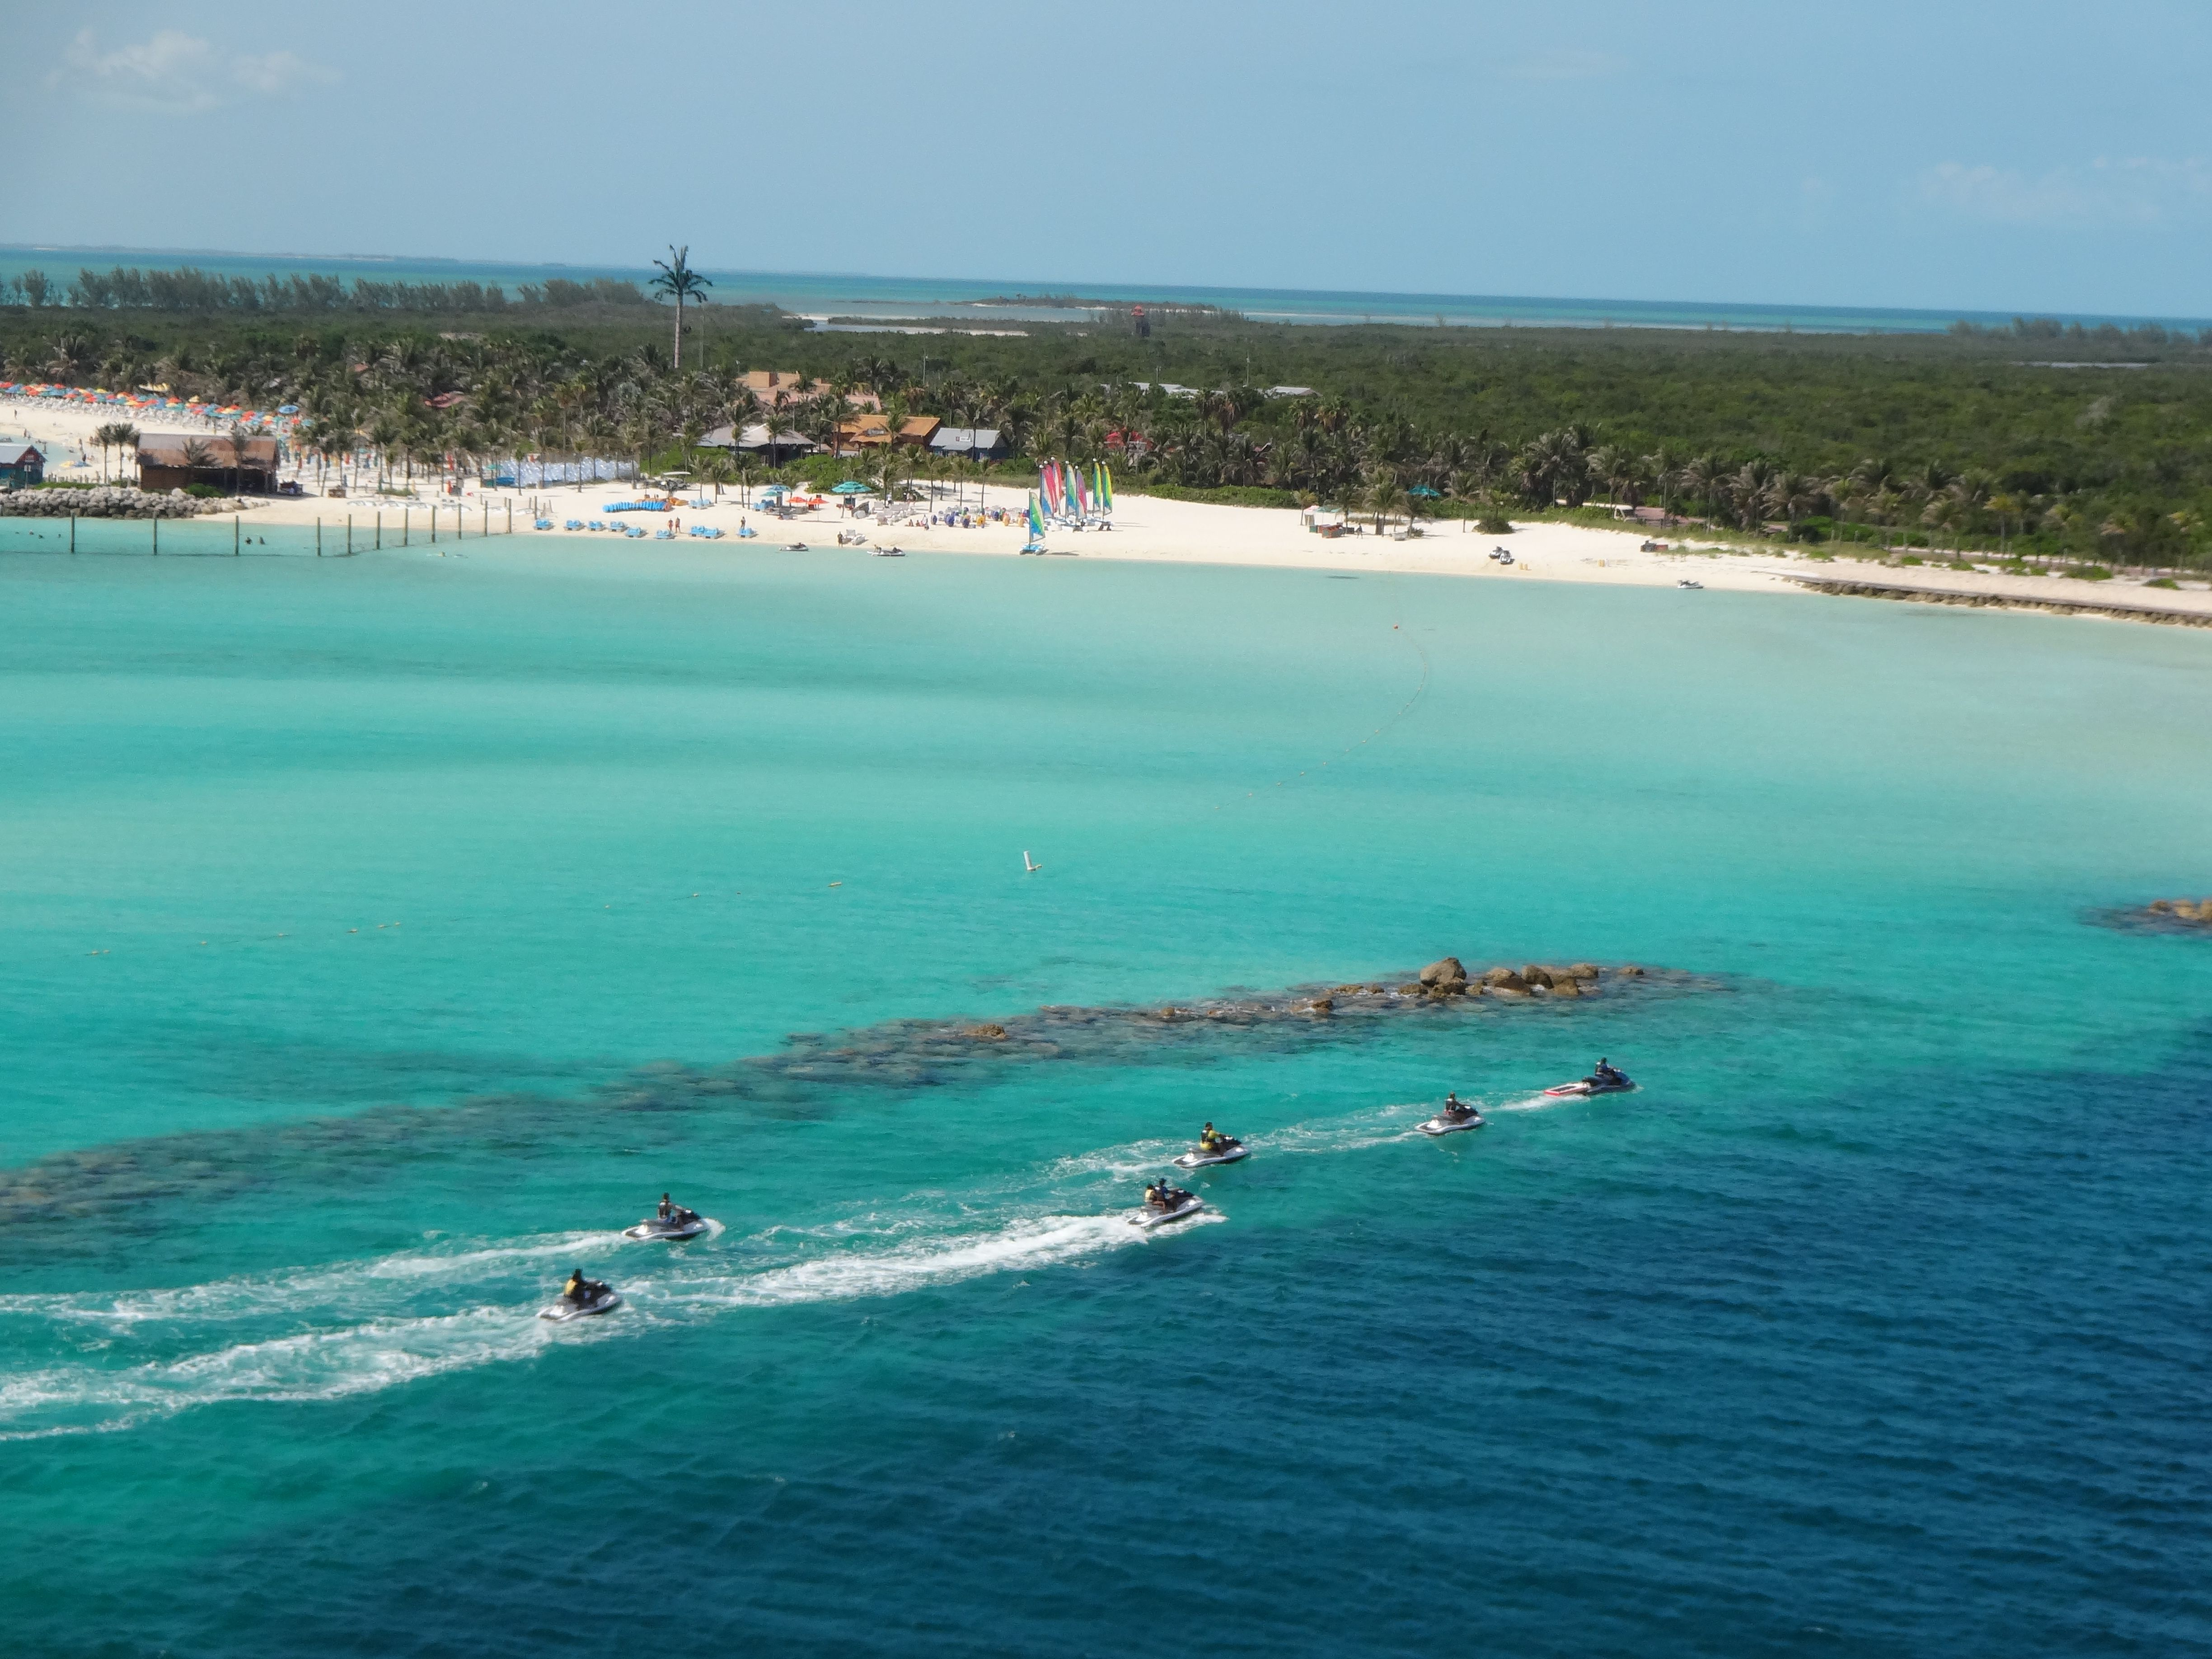 Castaway Cay is Disney's private island. It is a BIG reason to go on a Disney cruise! Fabulous